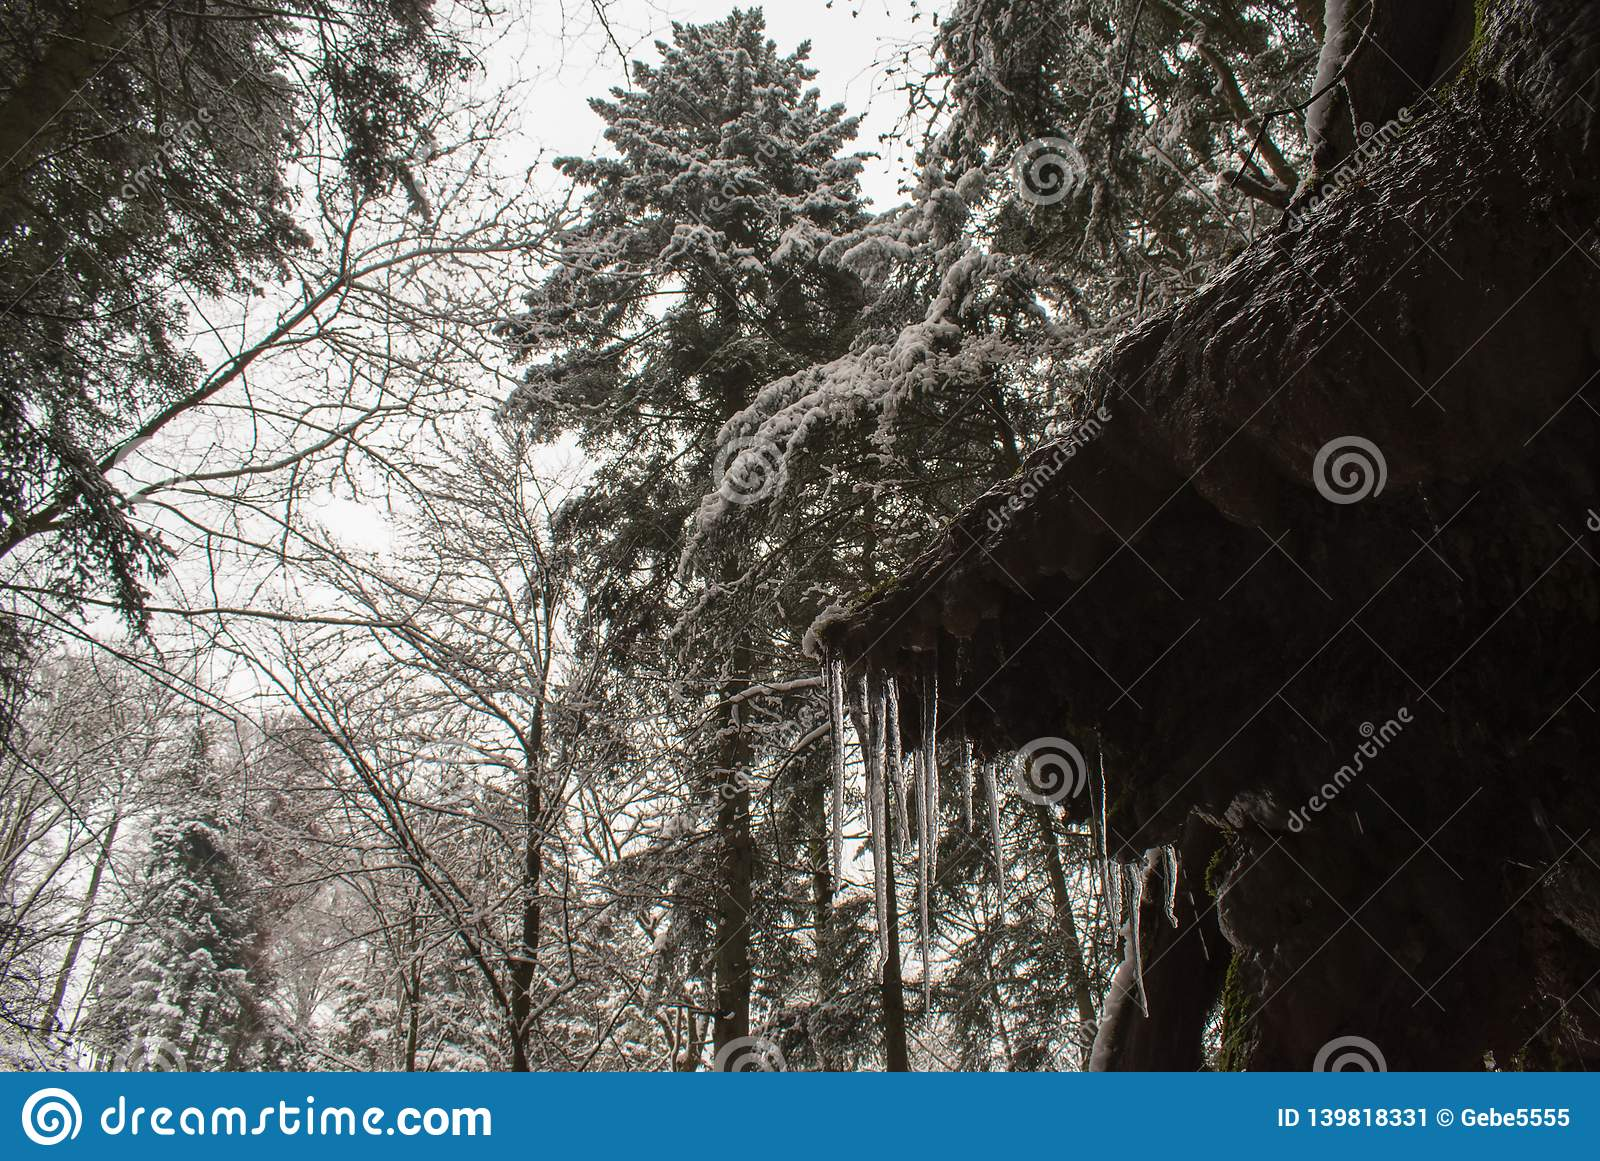 Icicle and fresh snow in a forest with tall trees in Switzerland